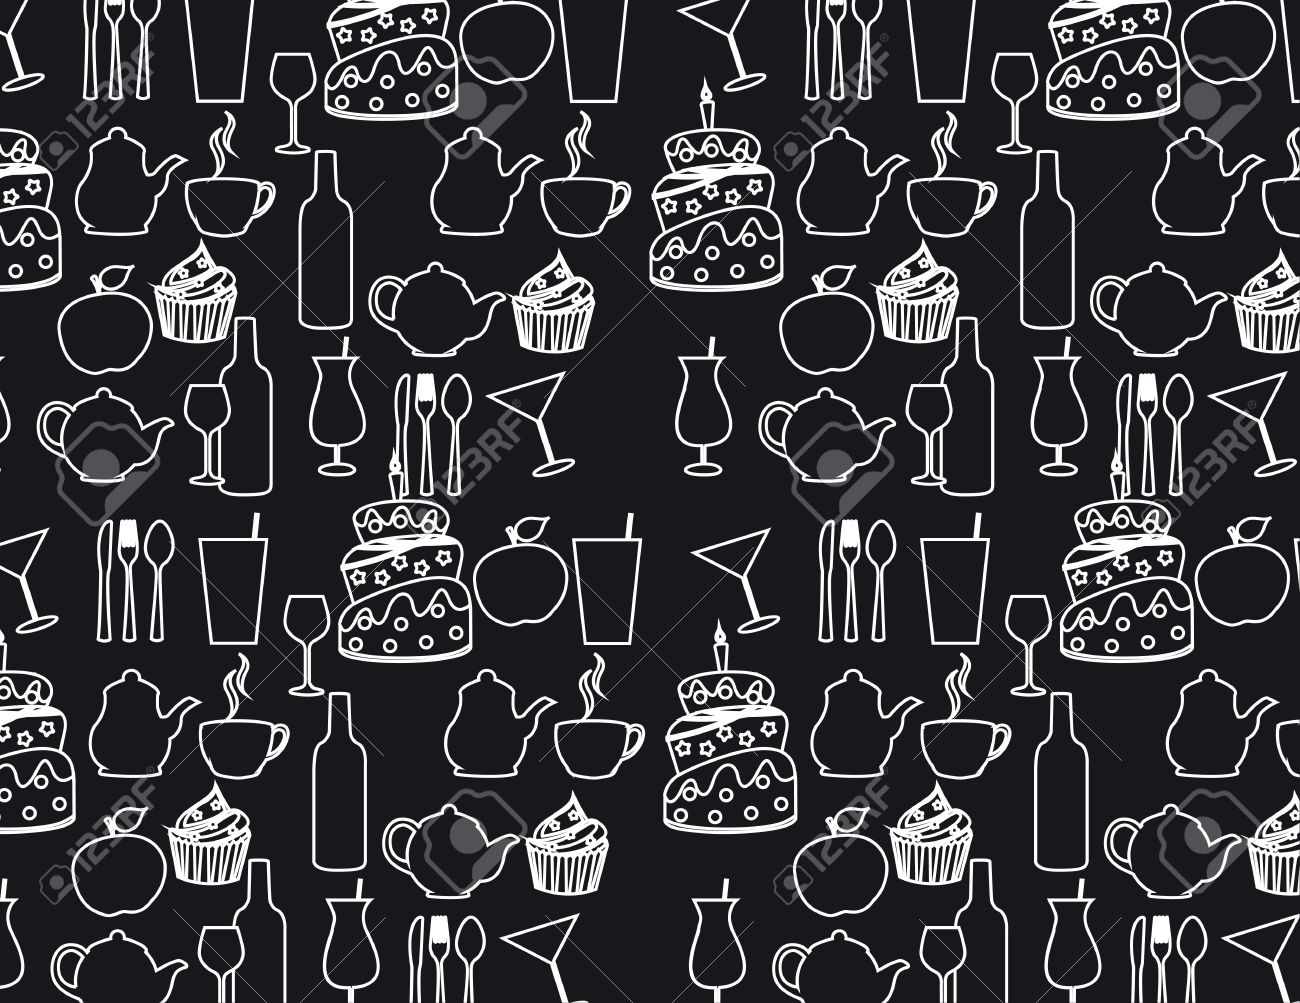 Black and white silhouette food background